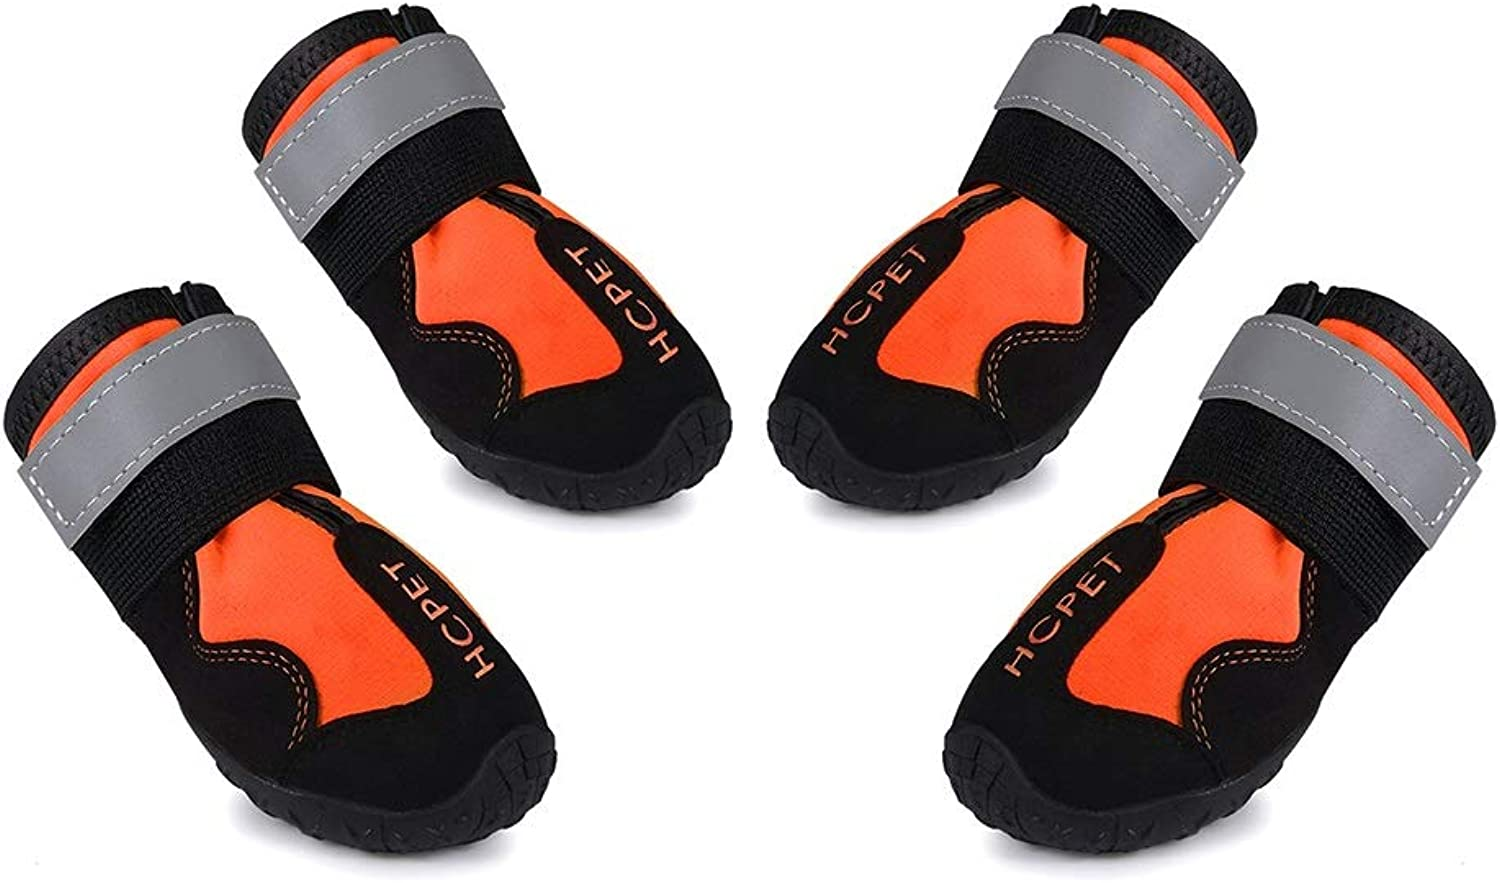 Waterproof Dog Boots Reflective Anti-Slip Pet Bootsorange 4 Pcs